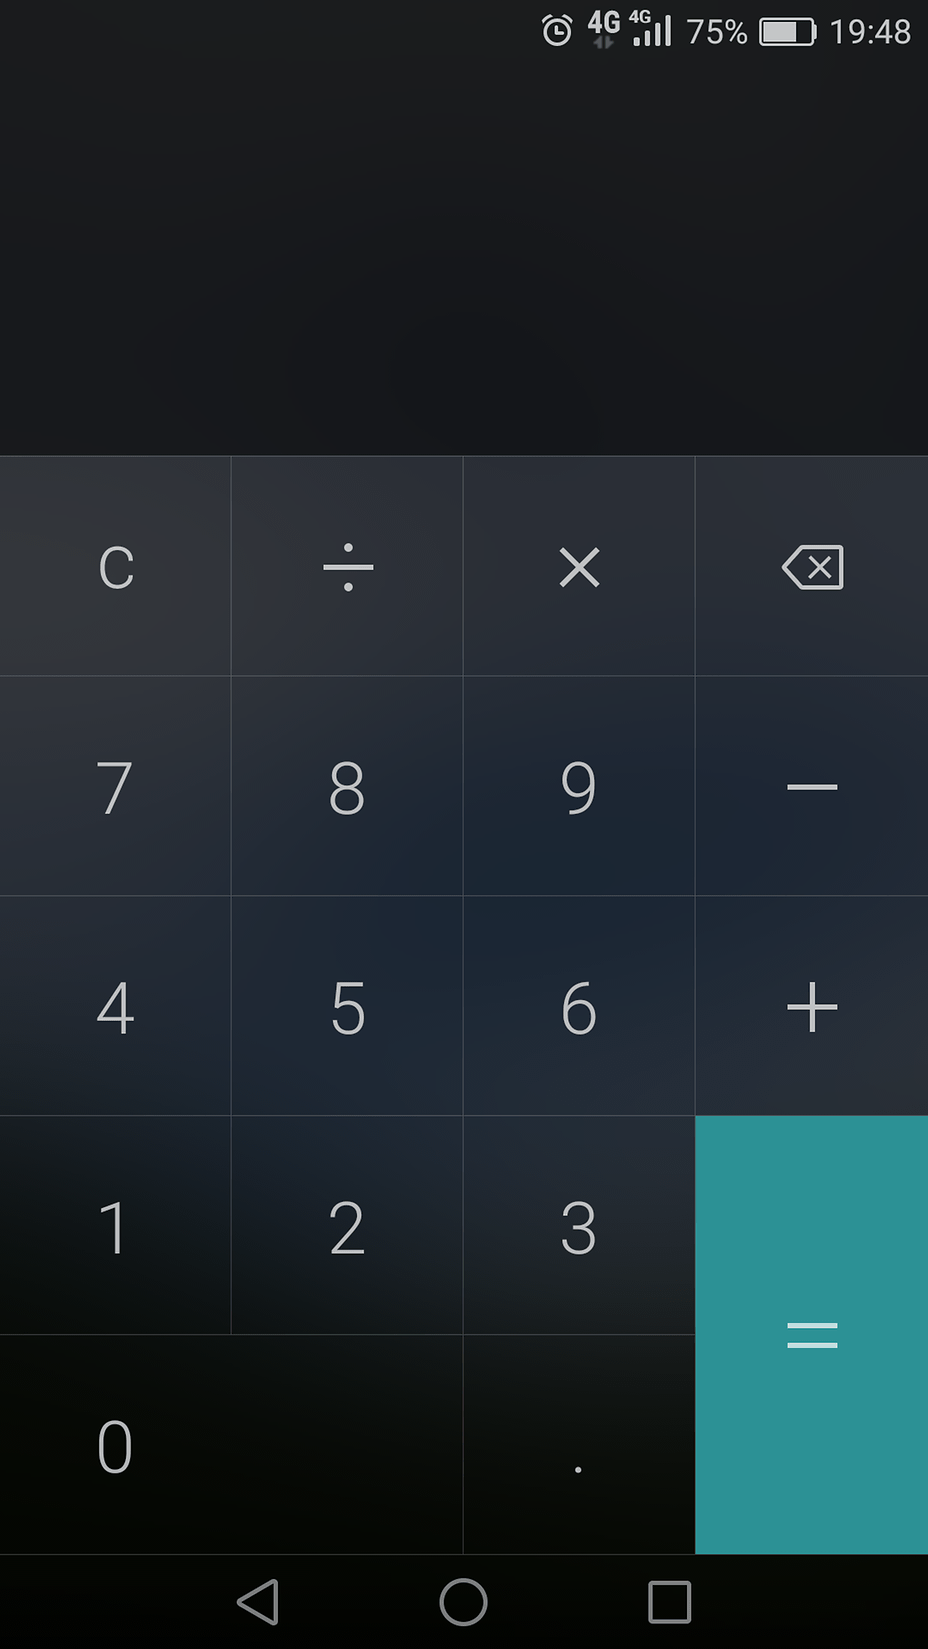 Secret calculator app for android